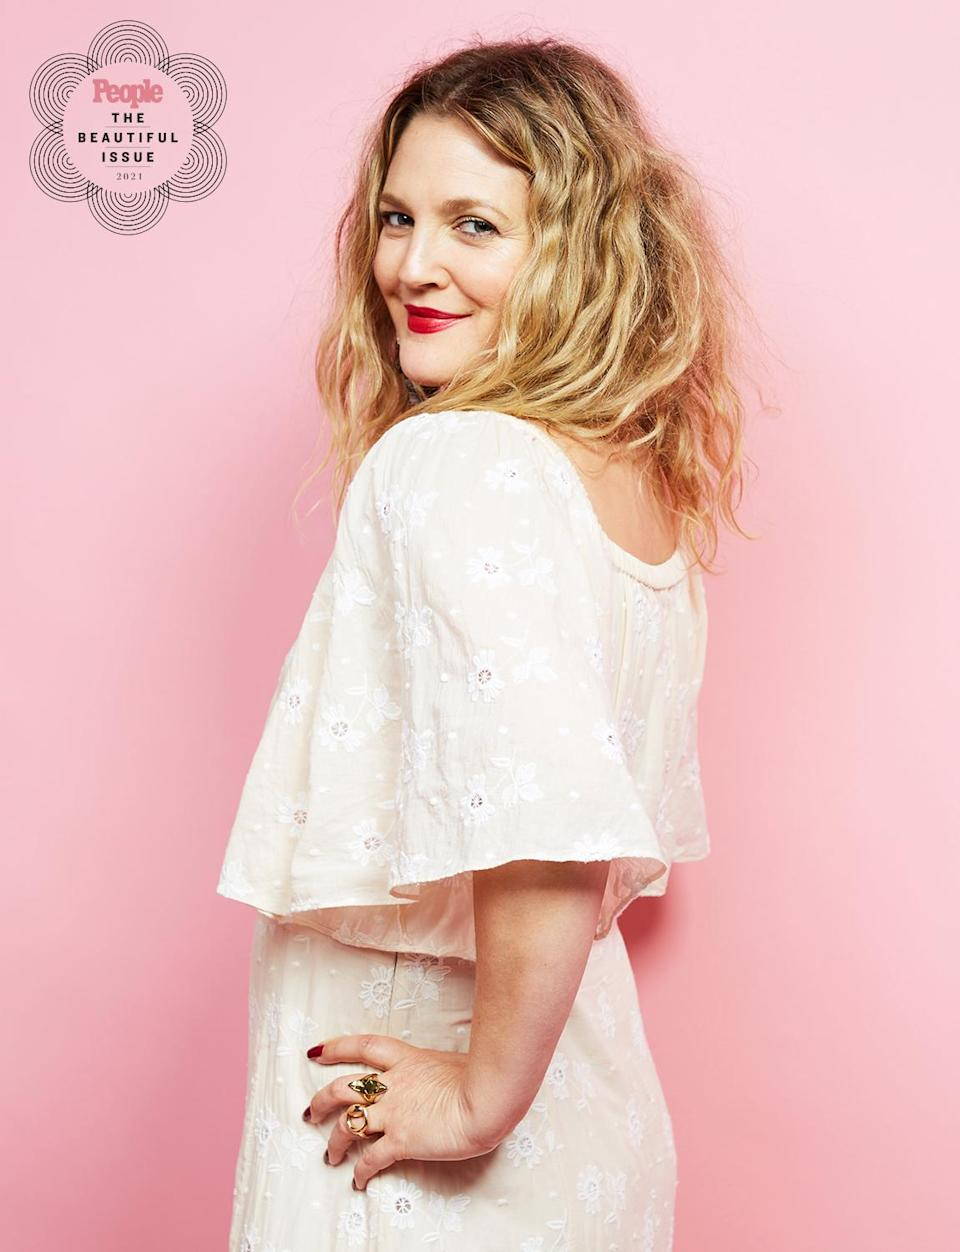 "<p>Already invested in beauty thanks to her Flower Beauty makeup line, the 46-year-old actress has spent the year focused on inner beauty, launching her eponymous talk show and lifting up the celebrities and everyday people she features on the series. </p> <p><a href=""https://people.com/parents/valentines-day-2021-drew-barrymore-rare-photos-daughters-frankie-olive-will-kopelman/"" rel=""nofollow noopener"" target=""_blank"" data-ylk=""slk:On Valentine's Day"" class=""link rapid-noclick-resp"">On Valentine's Day</a>, she sent a message of unity to followers alongside a photo of her young daughters, wishing for everyone to be ""wrapped up in love.""</p>"